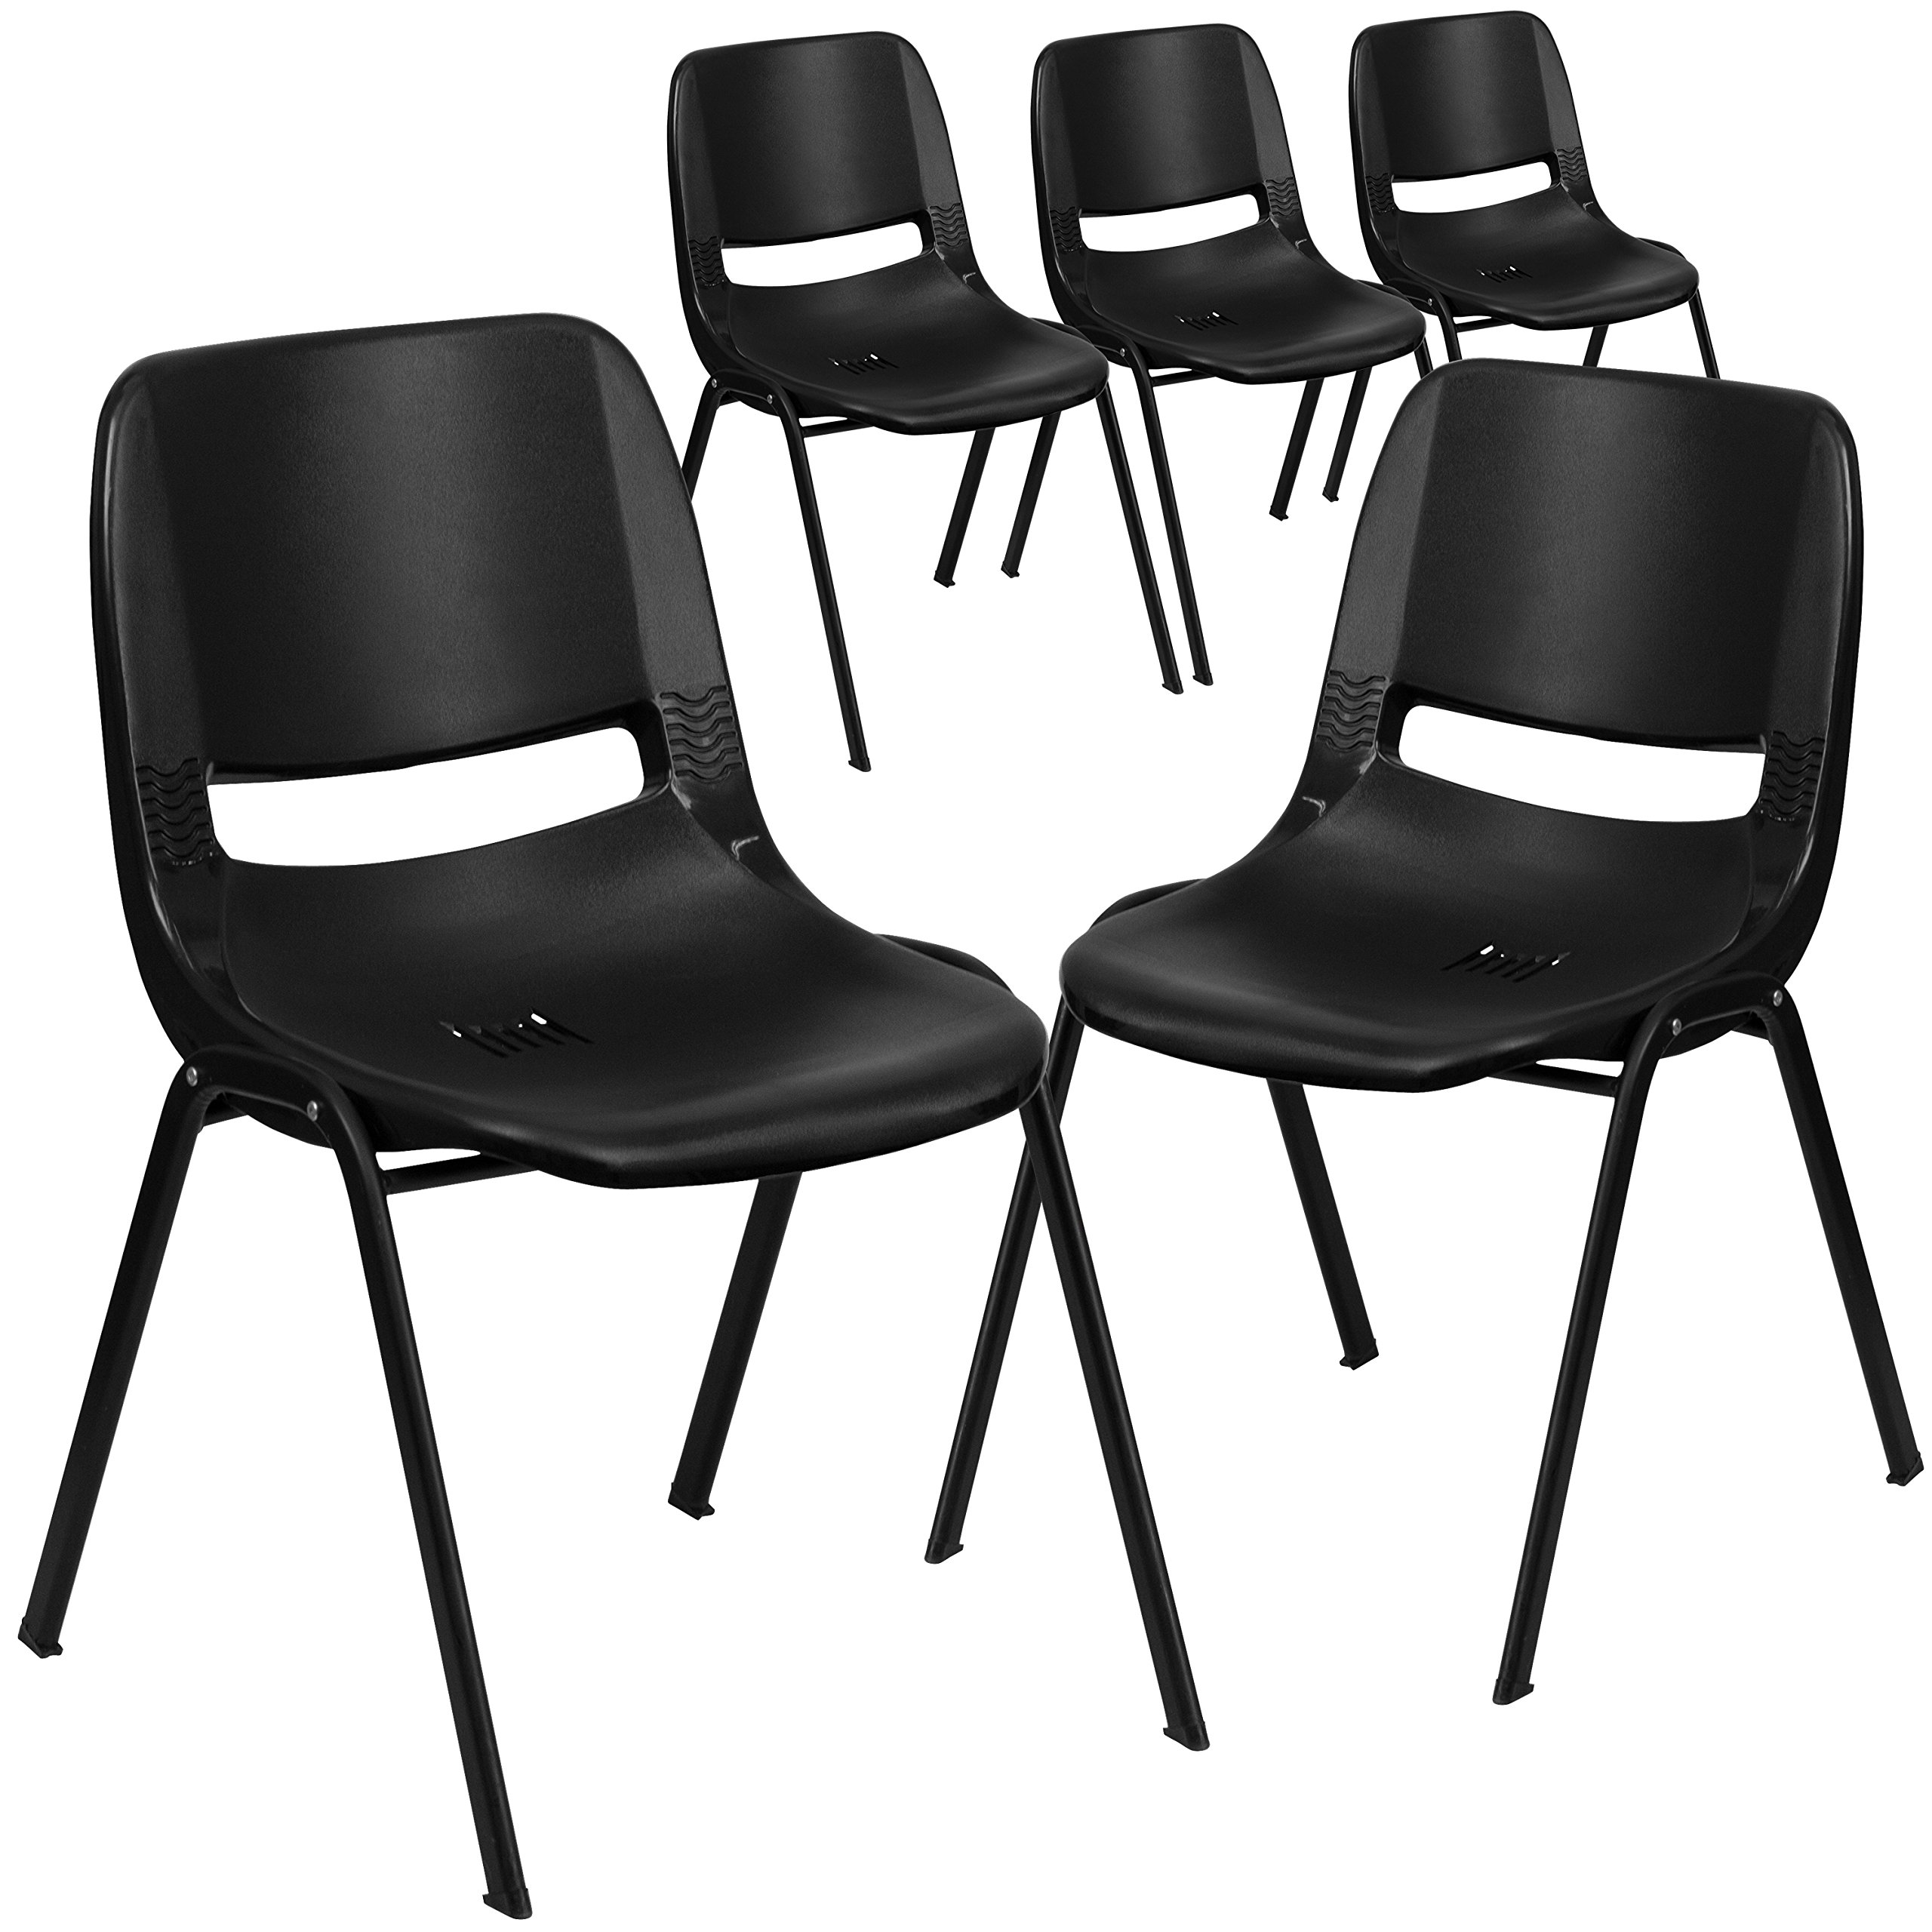 Flash Furniture 5 Pk. HERCULES Series 661 lb. Capacity Black Ergonomic Shell Stack Chair with Black Frame and 16'' Seat Height by Flash Furniture